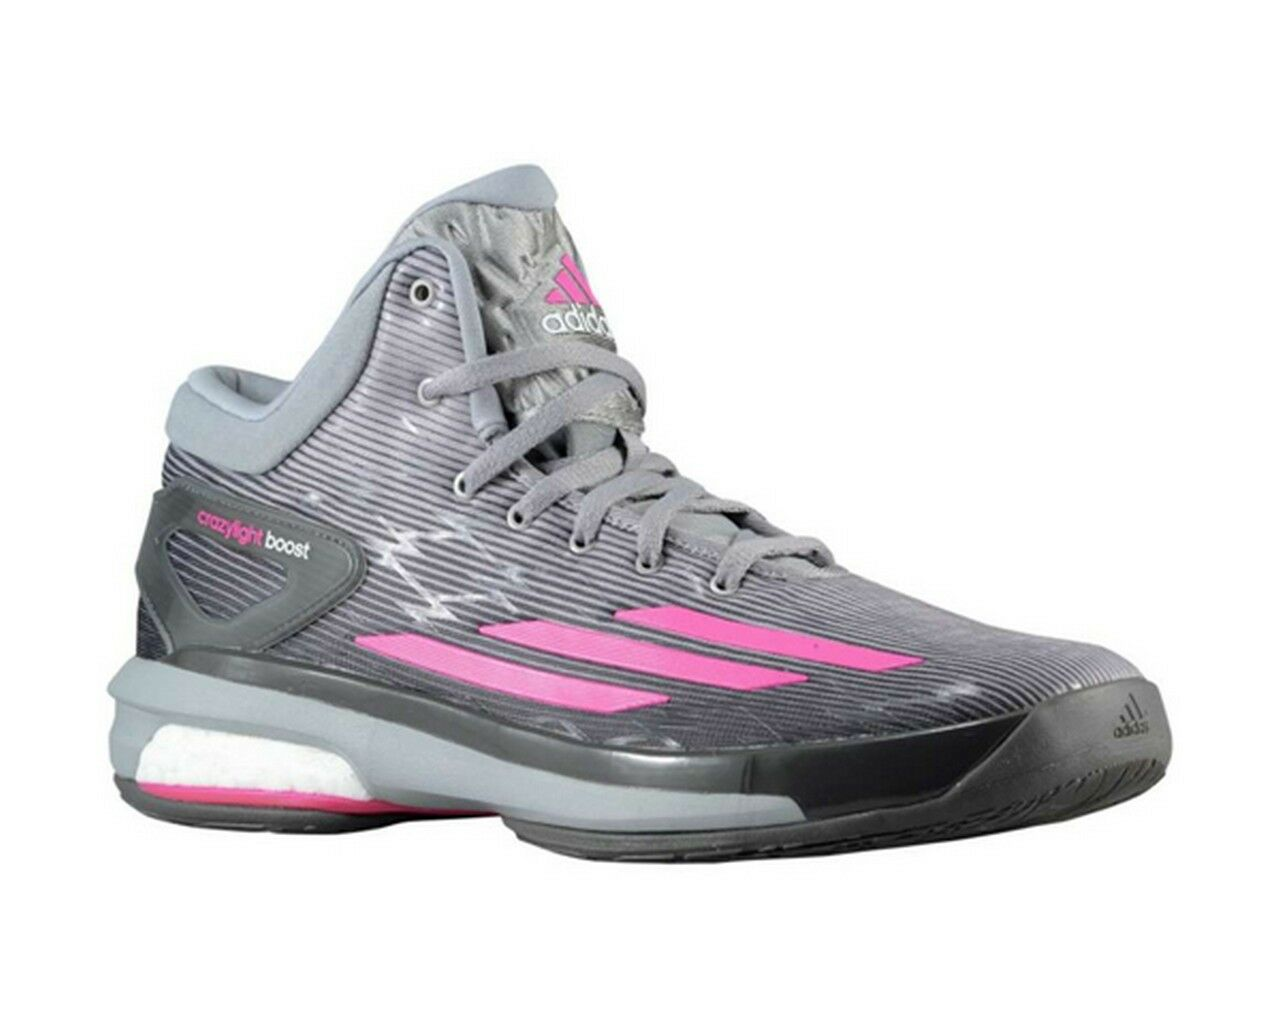 Adidas Crazylight Boost Light Onix rose Granite Gris basketball C75902